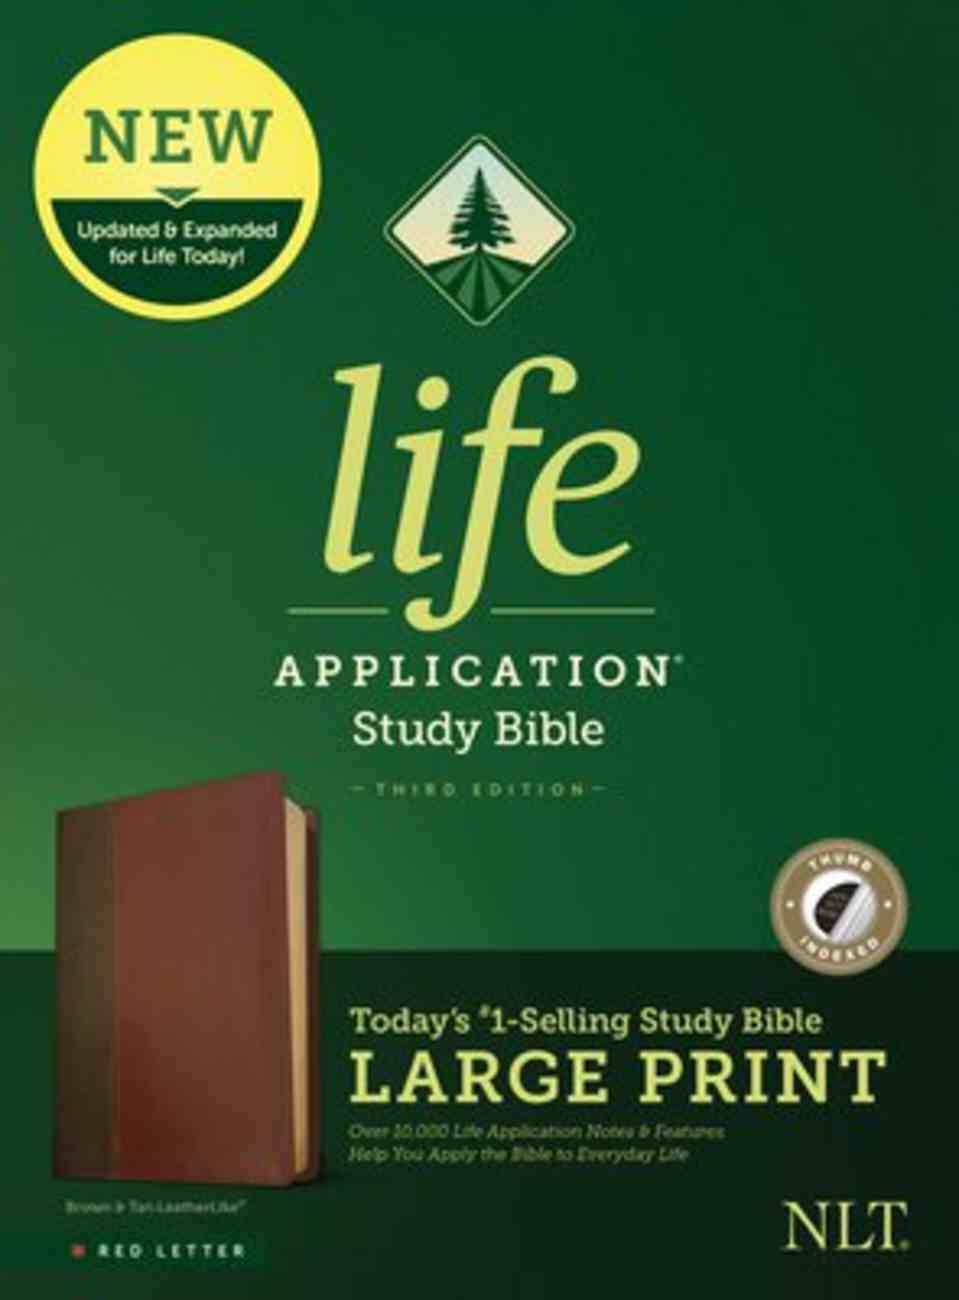 NLT Life Application Study Bible Third Edition Large Print Brown/Tan Indexed (Red Letter Edition) Imitation Leather